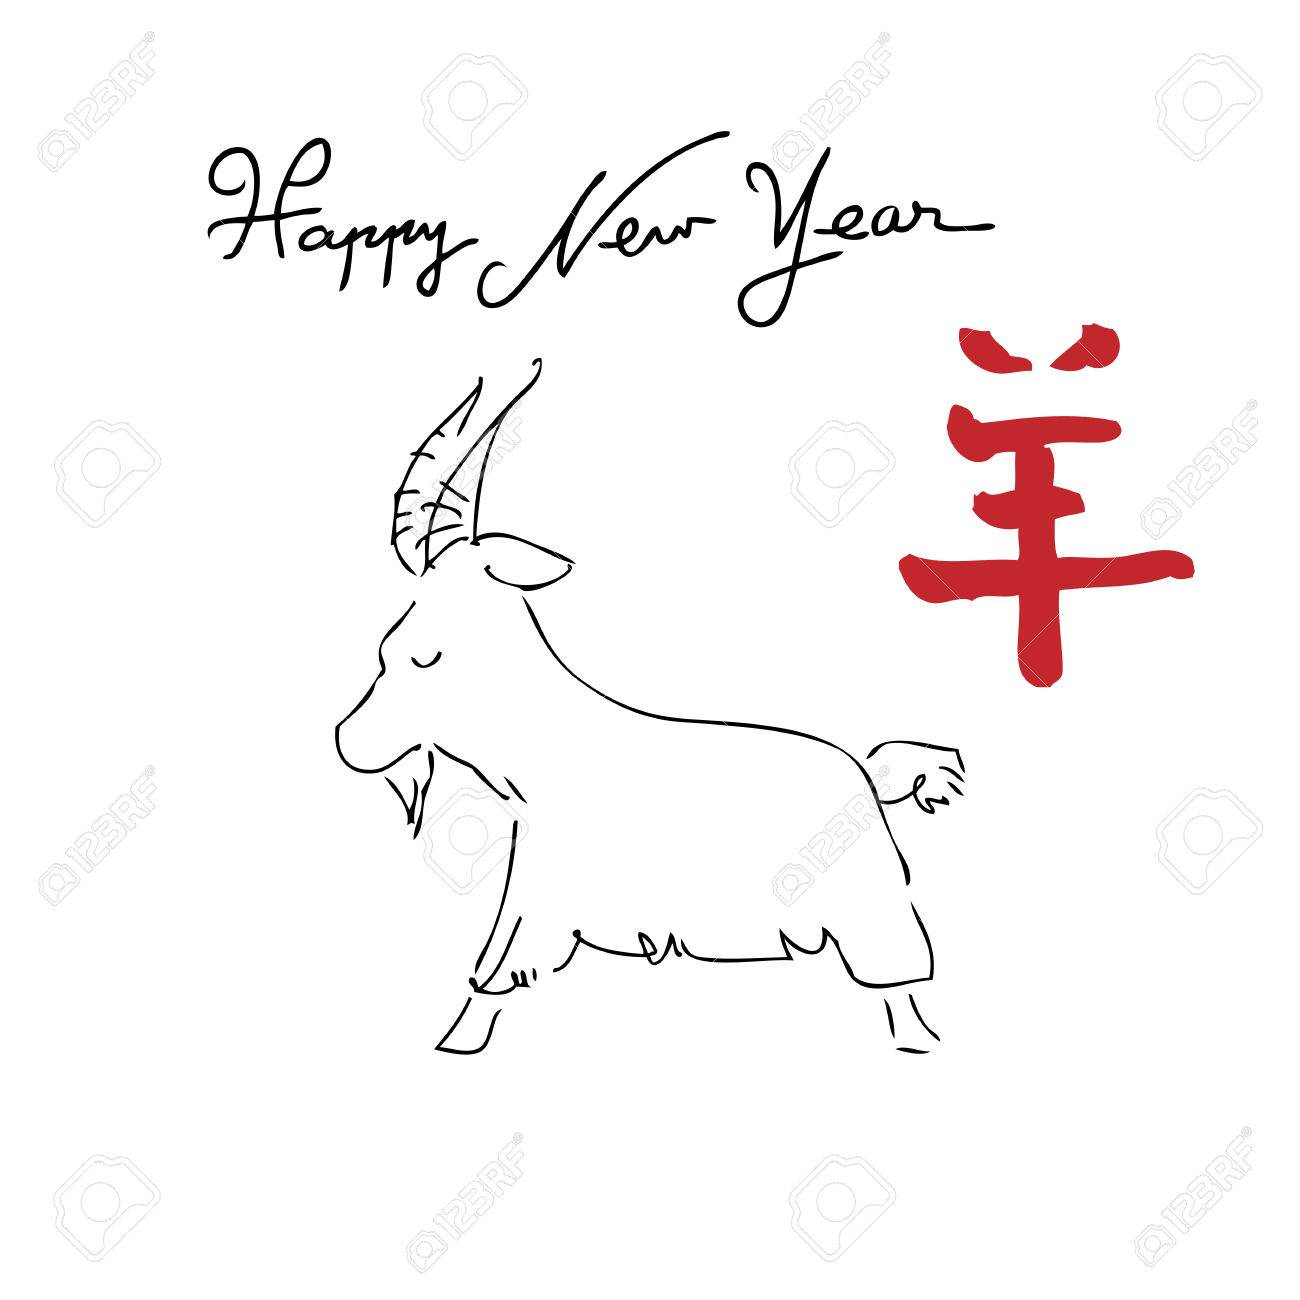 goat happy new year 2015 chinese brush drawing stock vector 34568158